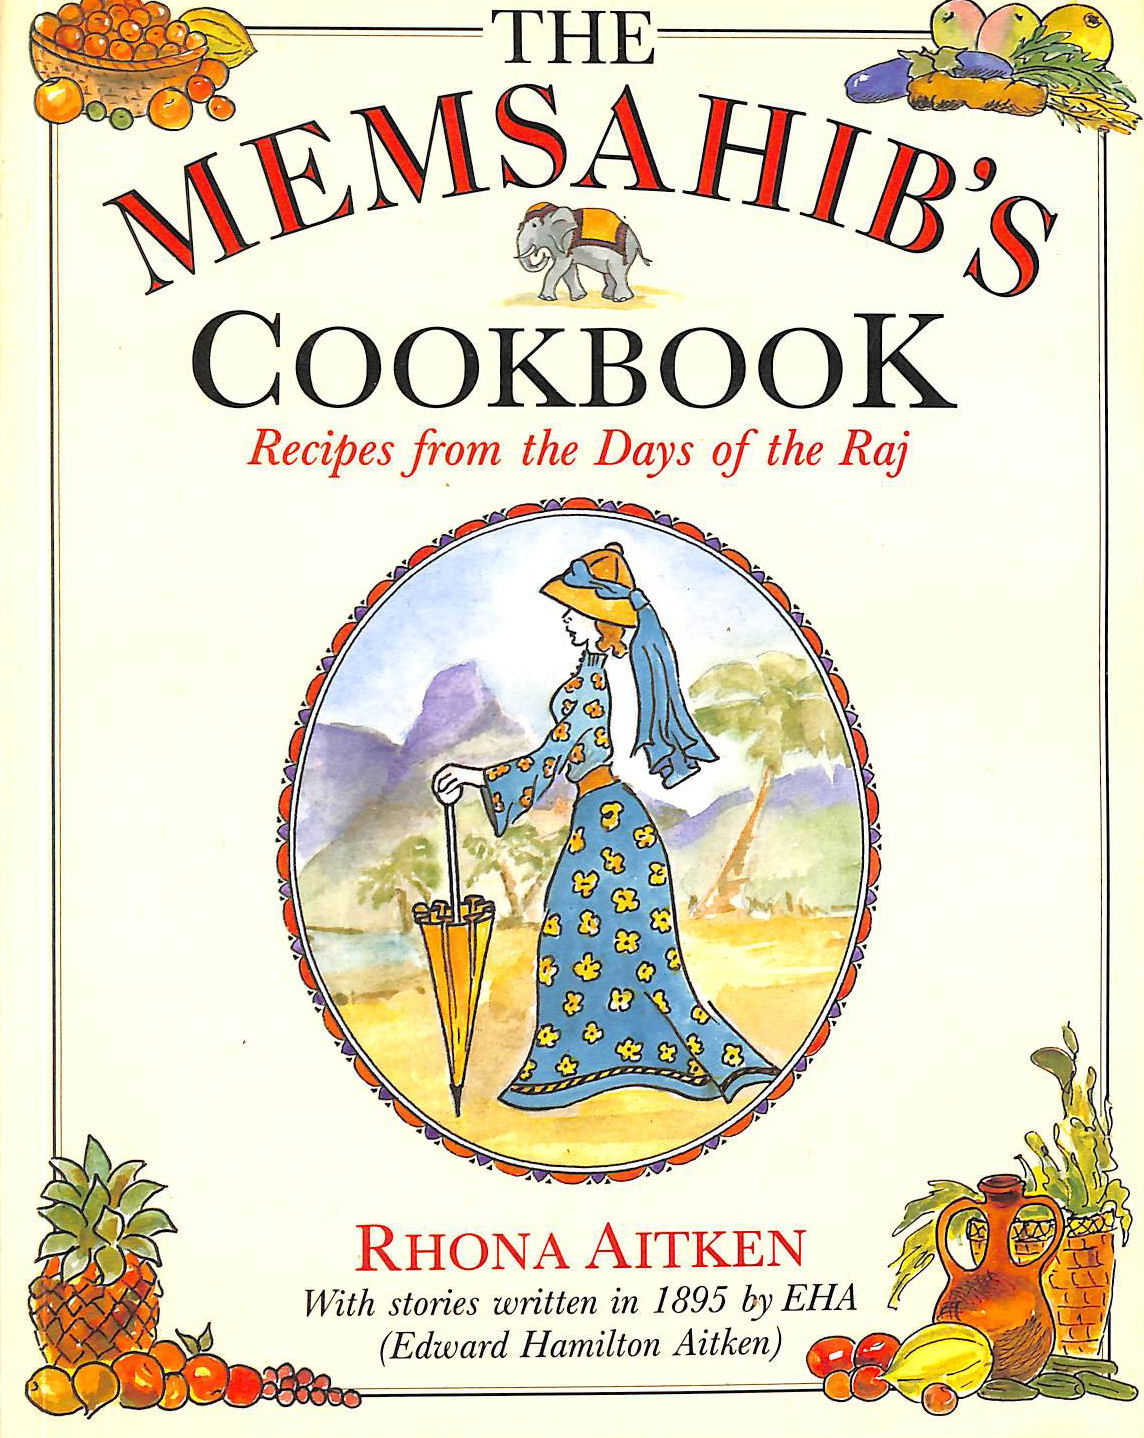 Image for The Memsahib's Cookbook: Recipes from the Days of the Raj